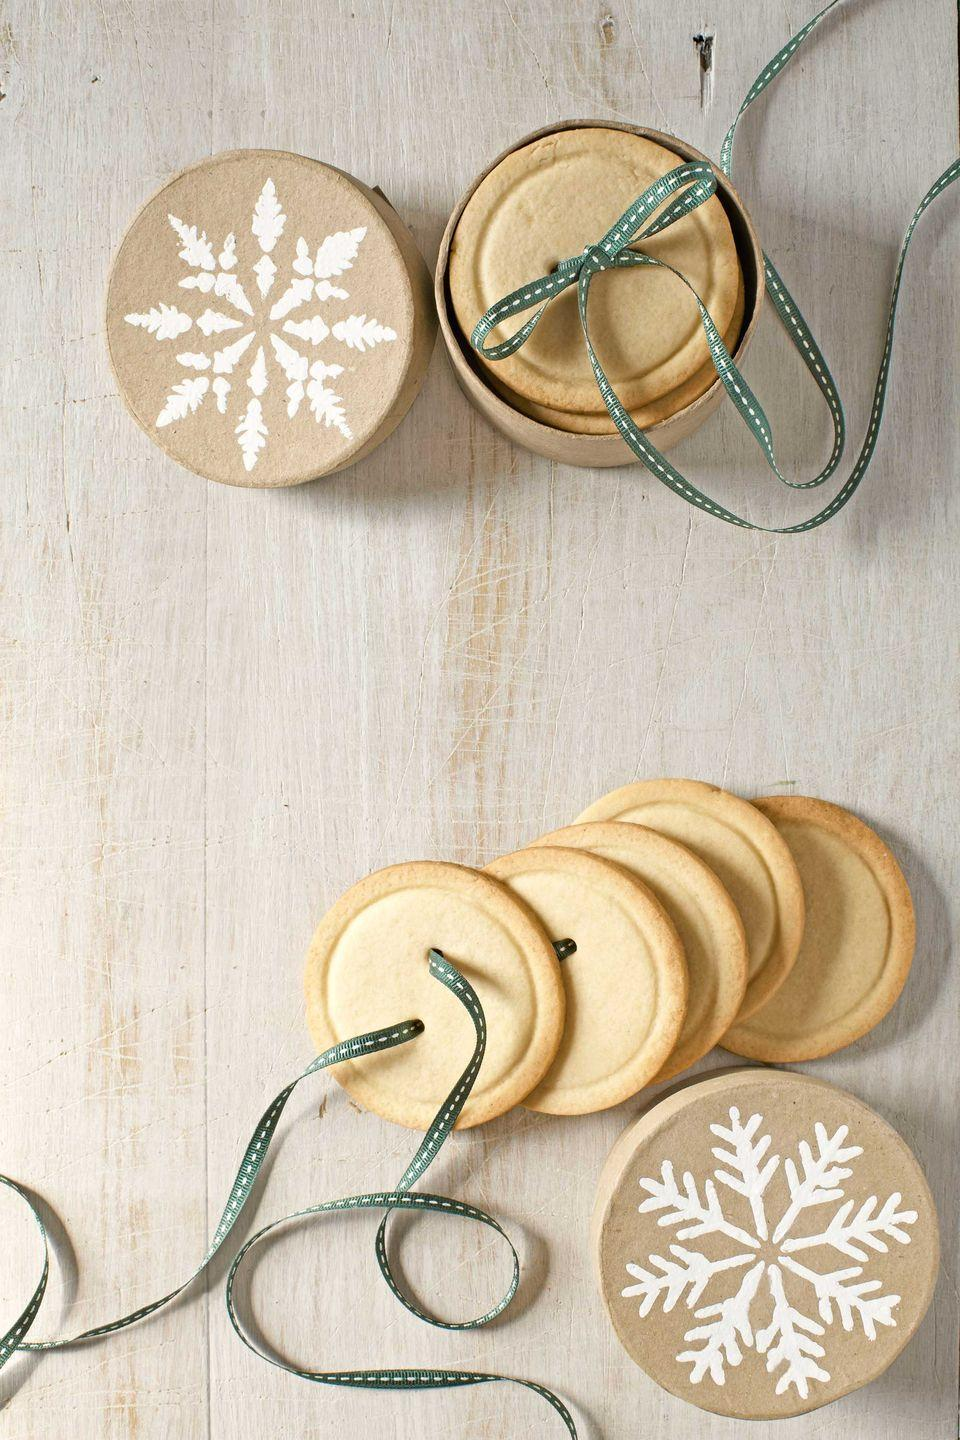 """<p>These buttery delights are cute as, well, you know. Gather a stack together by threading ribbon through the buttonholes, and present the cookies in a perfectly sized papier-mâché box with a snowflake stenciled on the lid.</p><p><strong><a href=""""https://www.countryliving.com/food-drinks/recipes/a4272/sugar-cookie-buttons-recipe-clv1212/"""" rel=""""nofollow noopener"""" target=""""_blank"""" data-ylk=""""slk:Get the recipe"""" class=""""link rapid-noclick-resp"""">Get the recipe</a>.</strong></p>"""